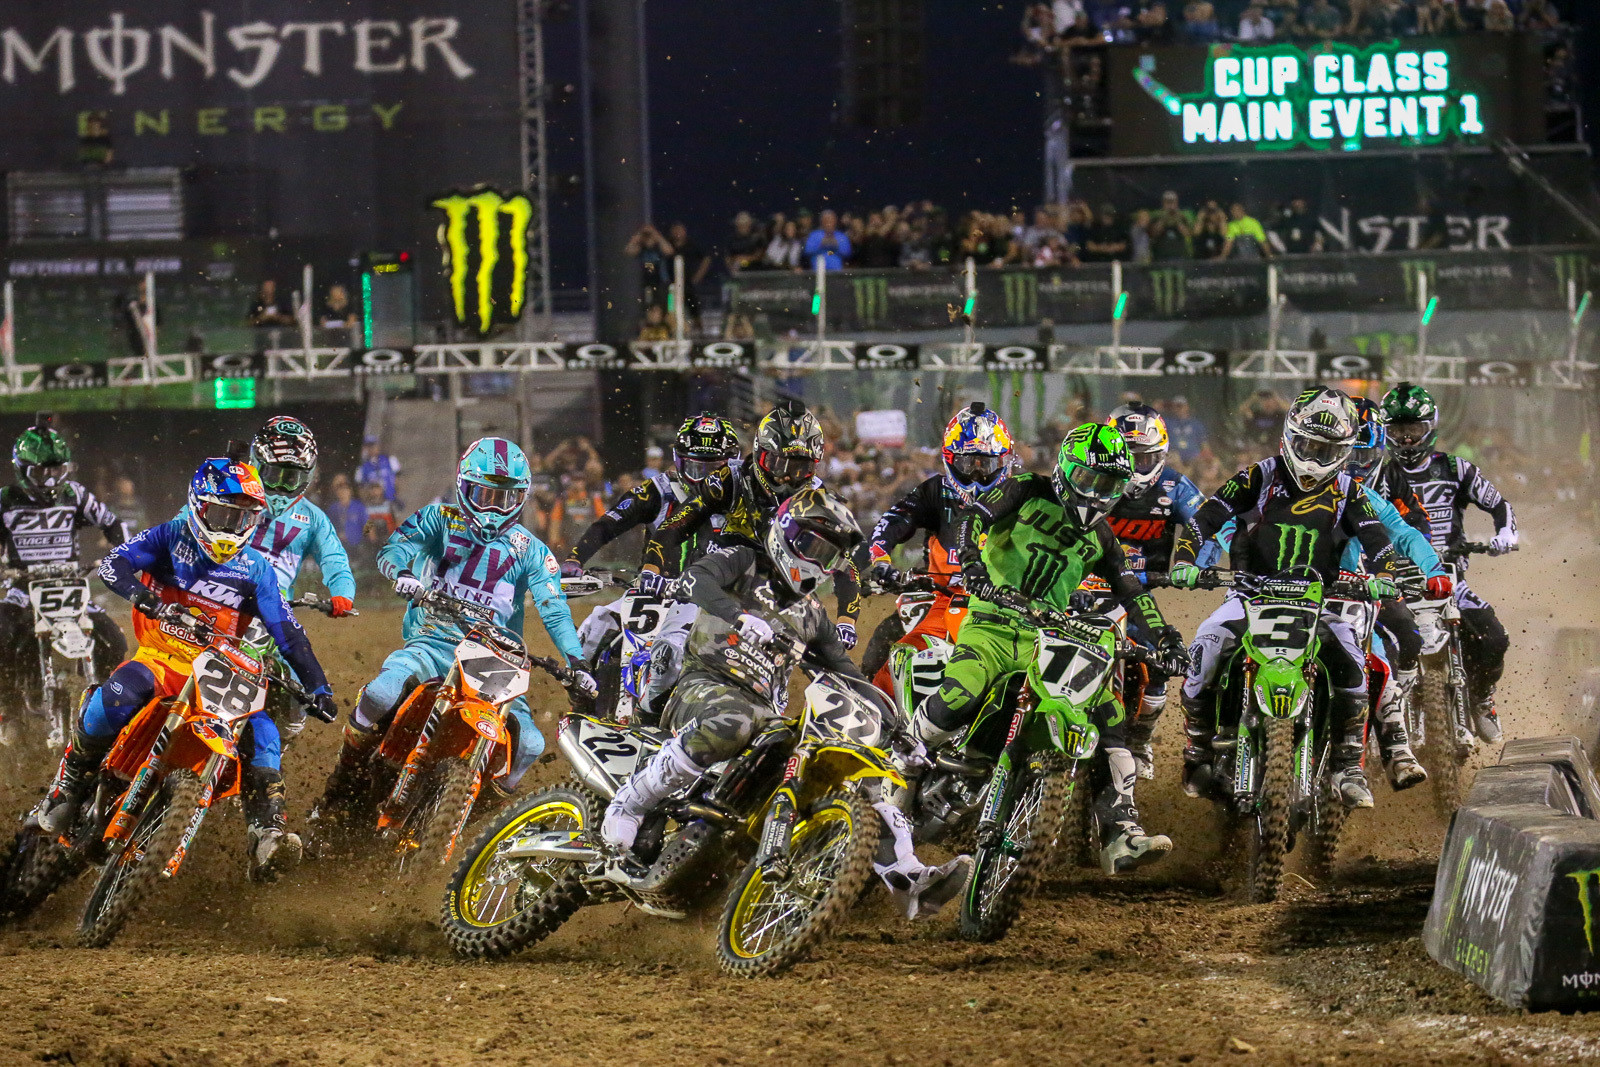 Chad Reed got the early jump on the pack in the first Cup main, but it didn't last long,